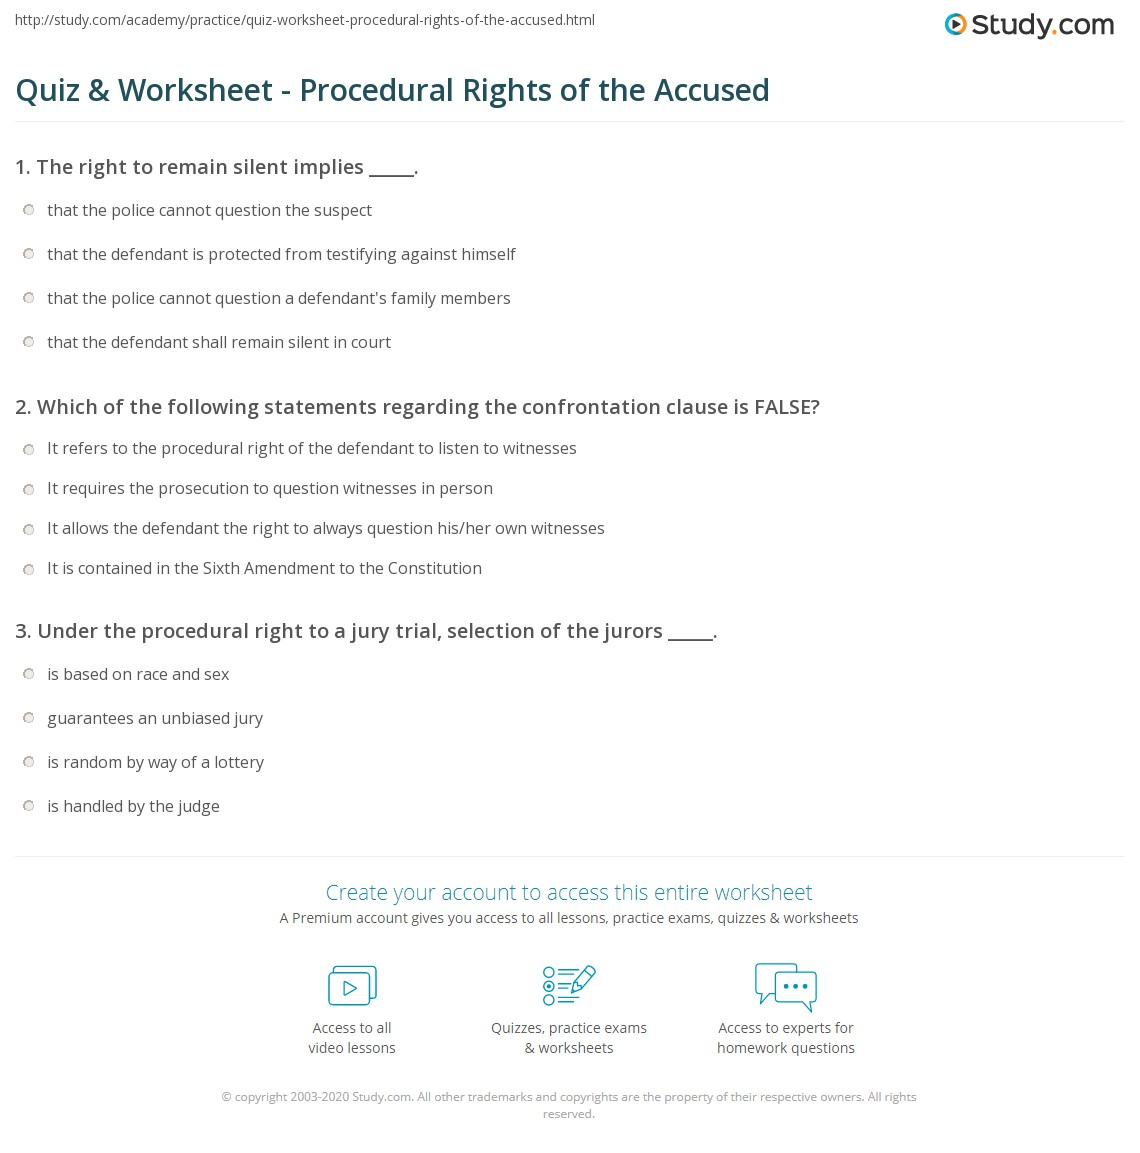 quiz worksheet procedural rights of the accused. Black Bedroom Furniture Sets. Home Design Ideas